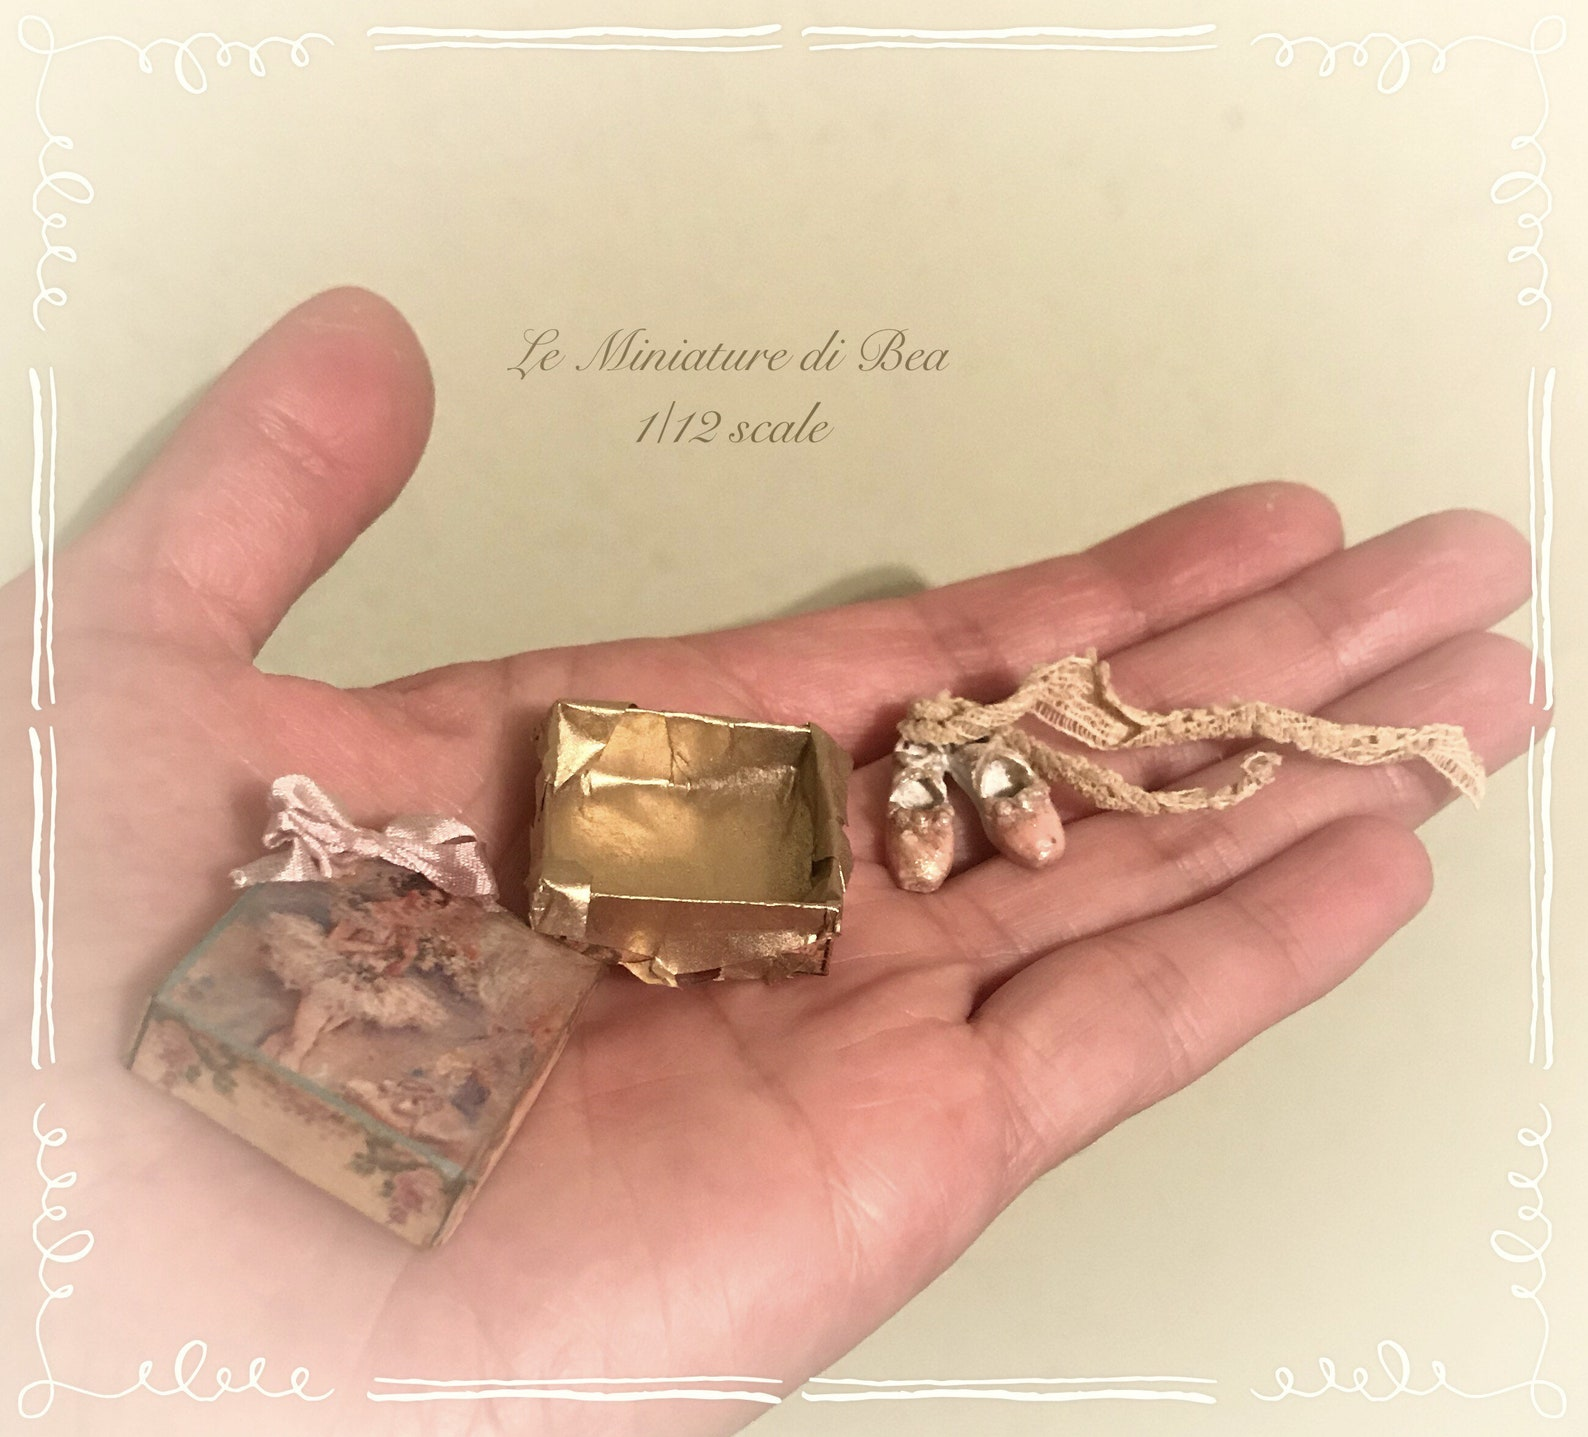 1/12 victorian box with ballet shoes, dollshouse miniature hand made by bea antiche french style.